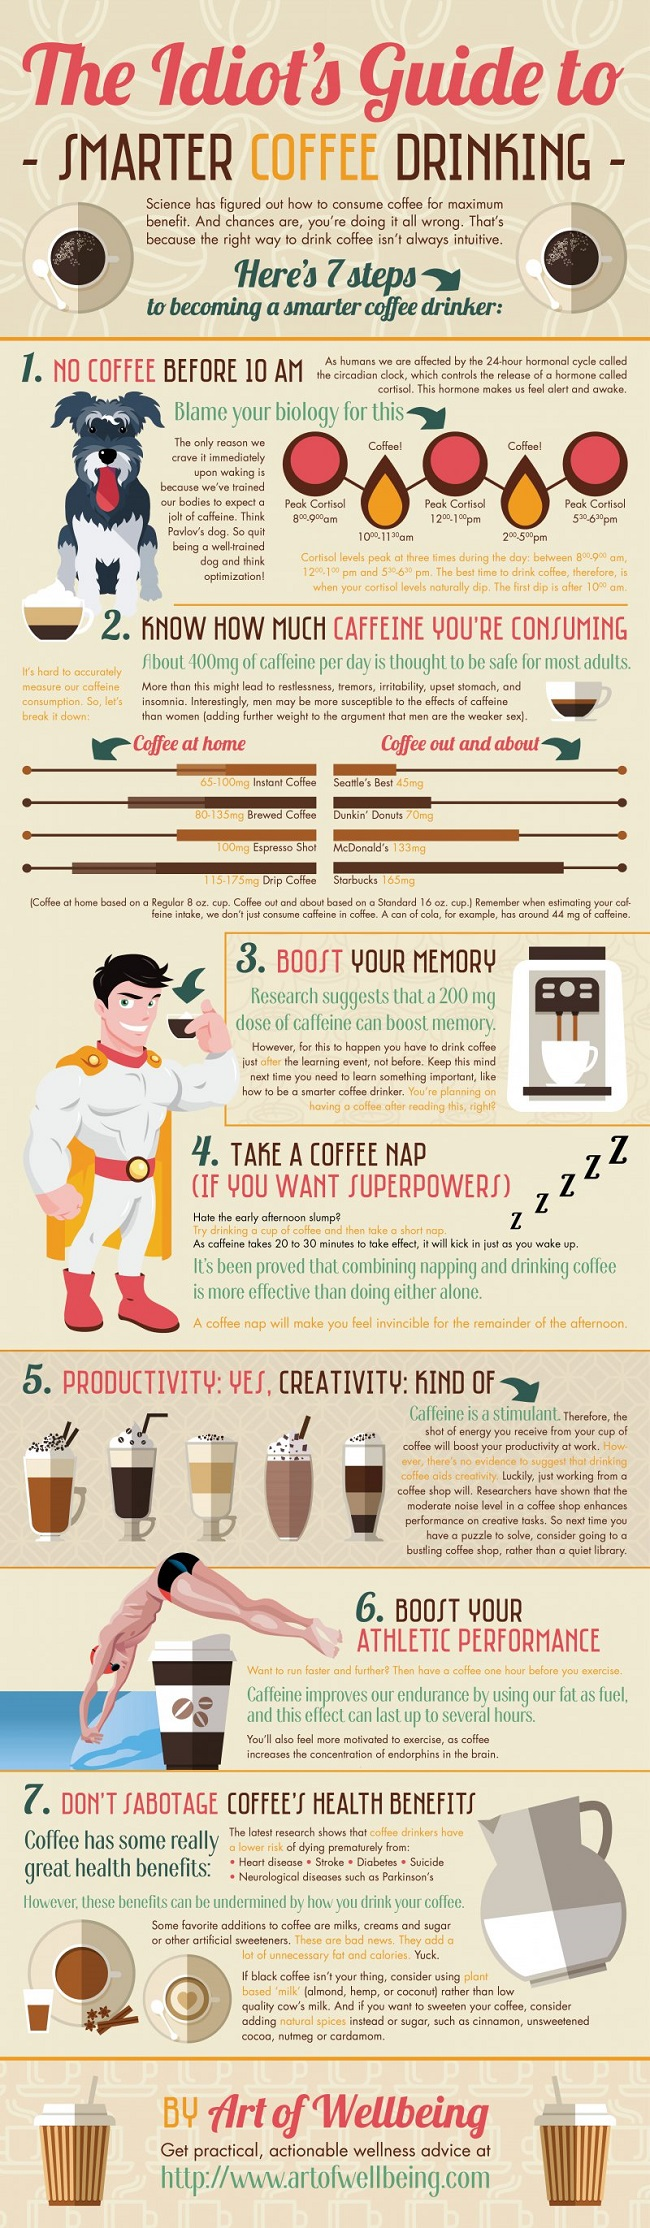 Idiots-guide-to-coffee-2